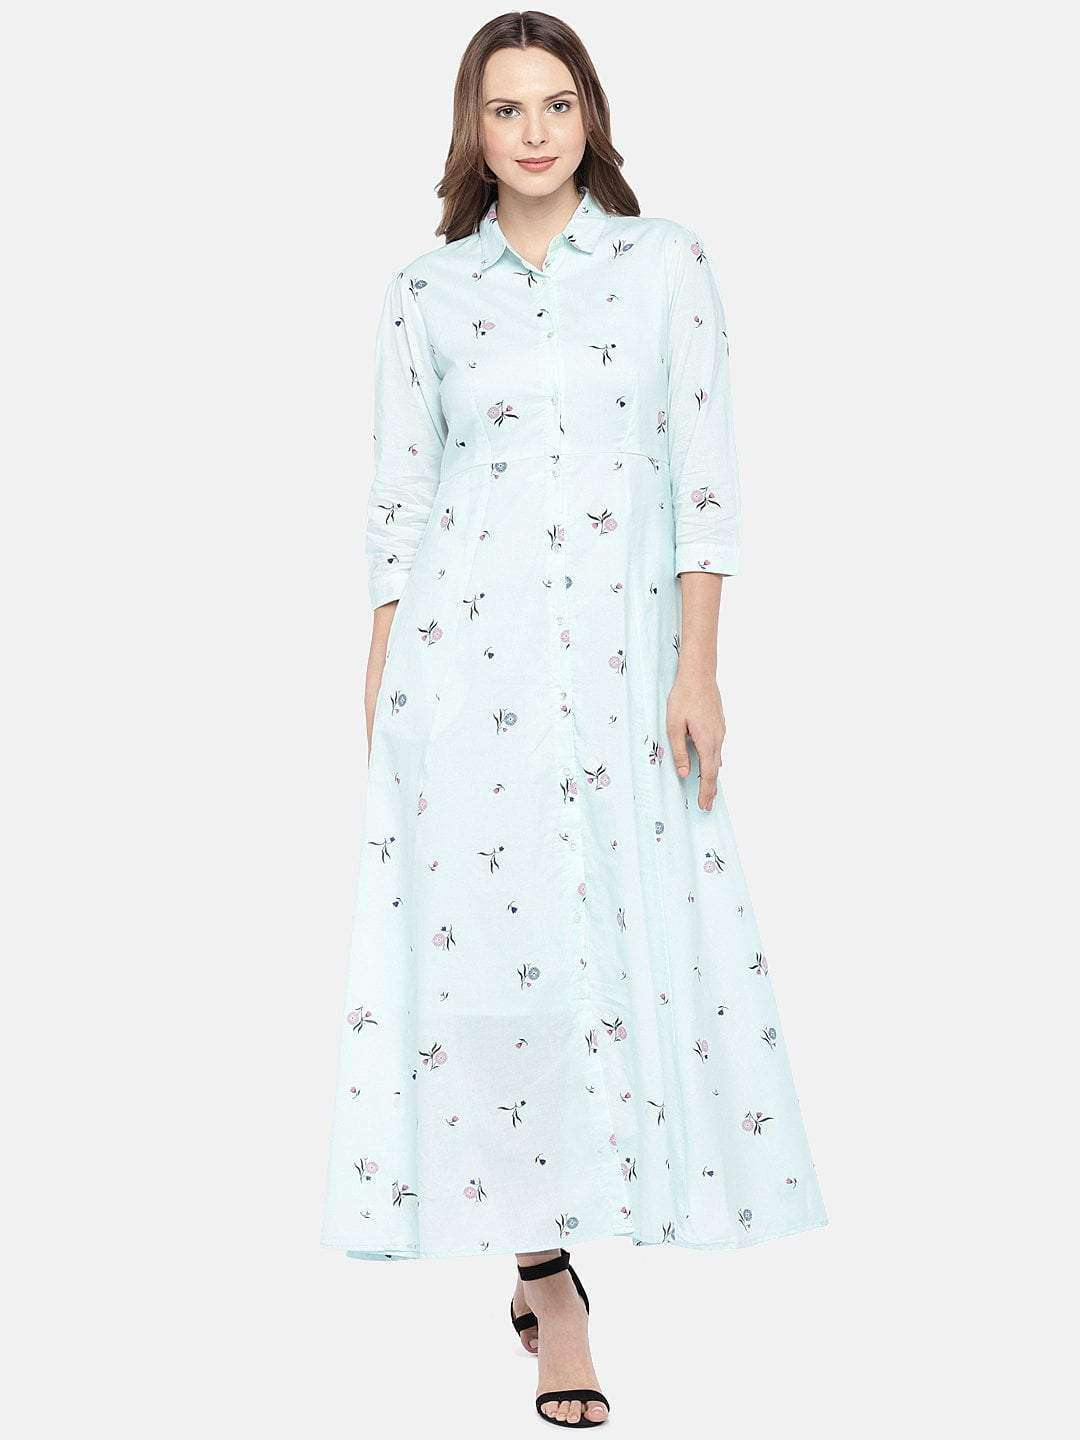 Light Blue Cambric Dress Women S Semi Formal Wear Regular Fit Cambric Dress Cottonworld Browse these beautiful women fitted dresses to get the perfect attire for girls. inr